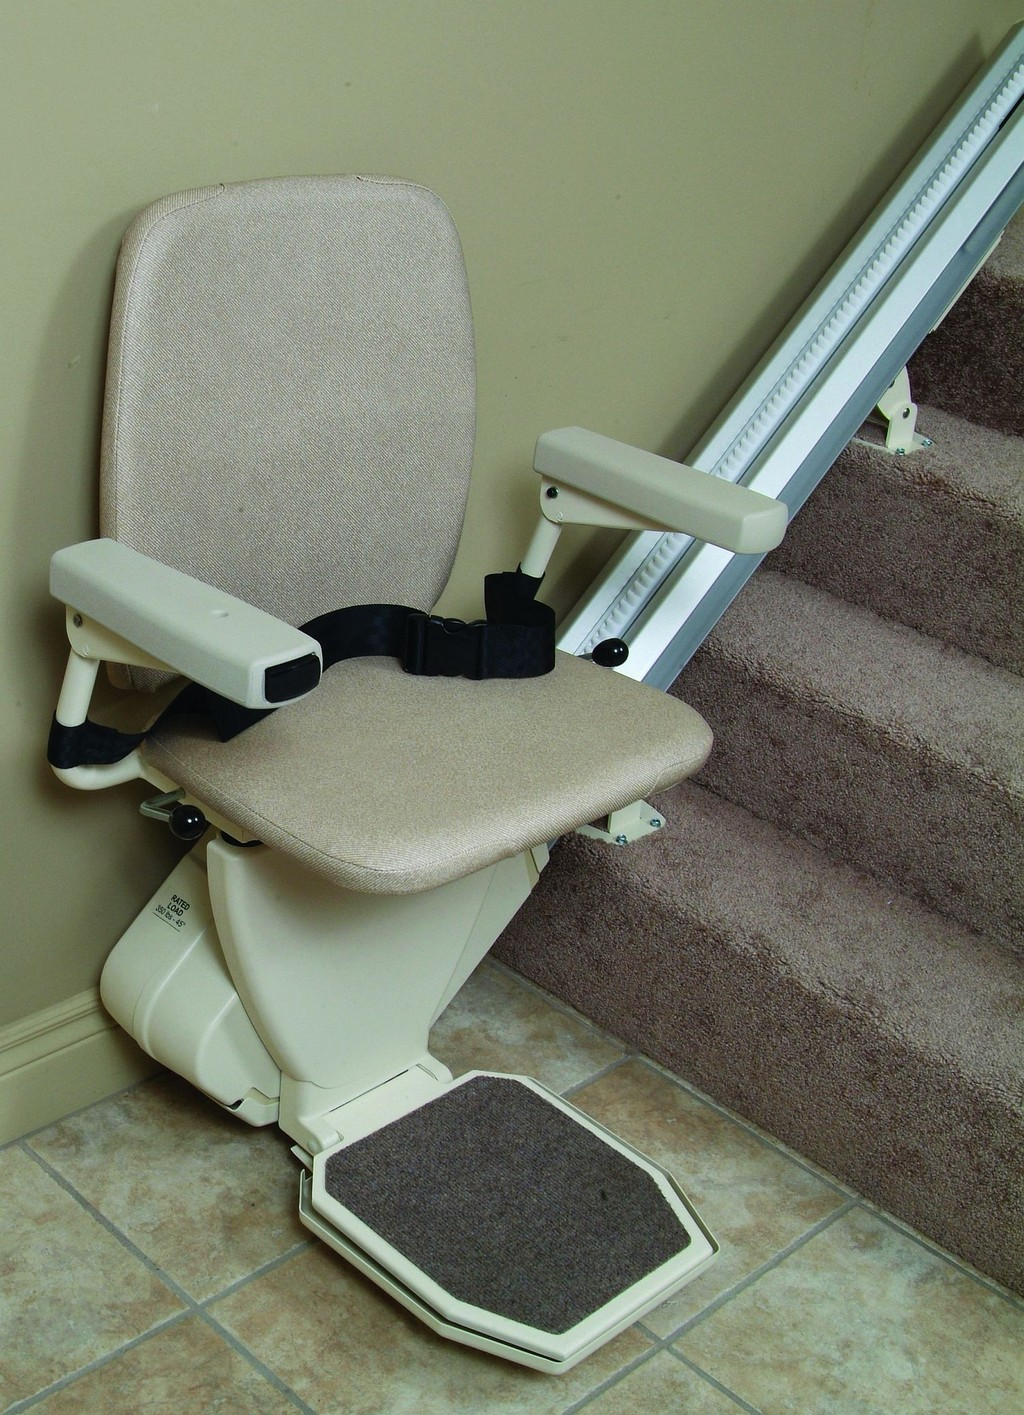 electric lift stair, liberator stair lift, bruno curved stair lift, acorn lift stair